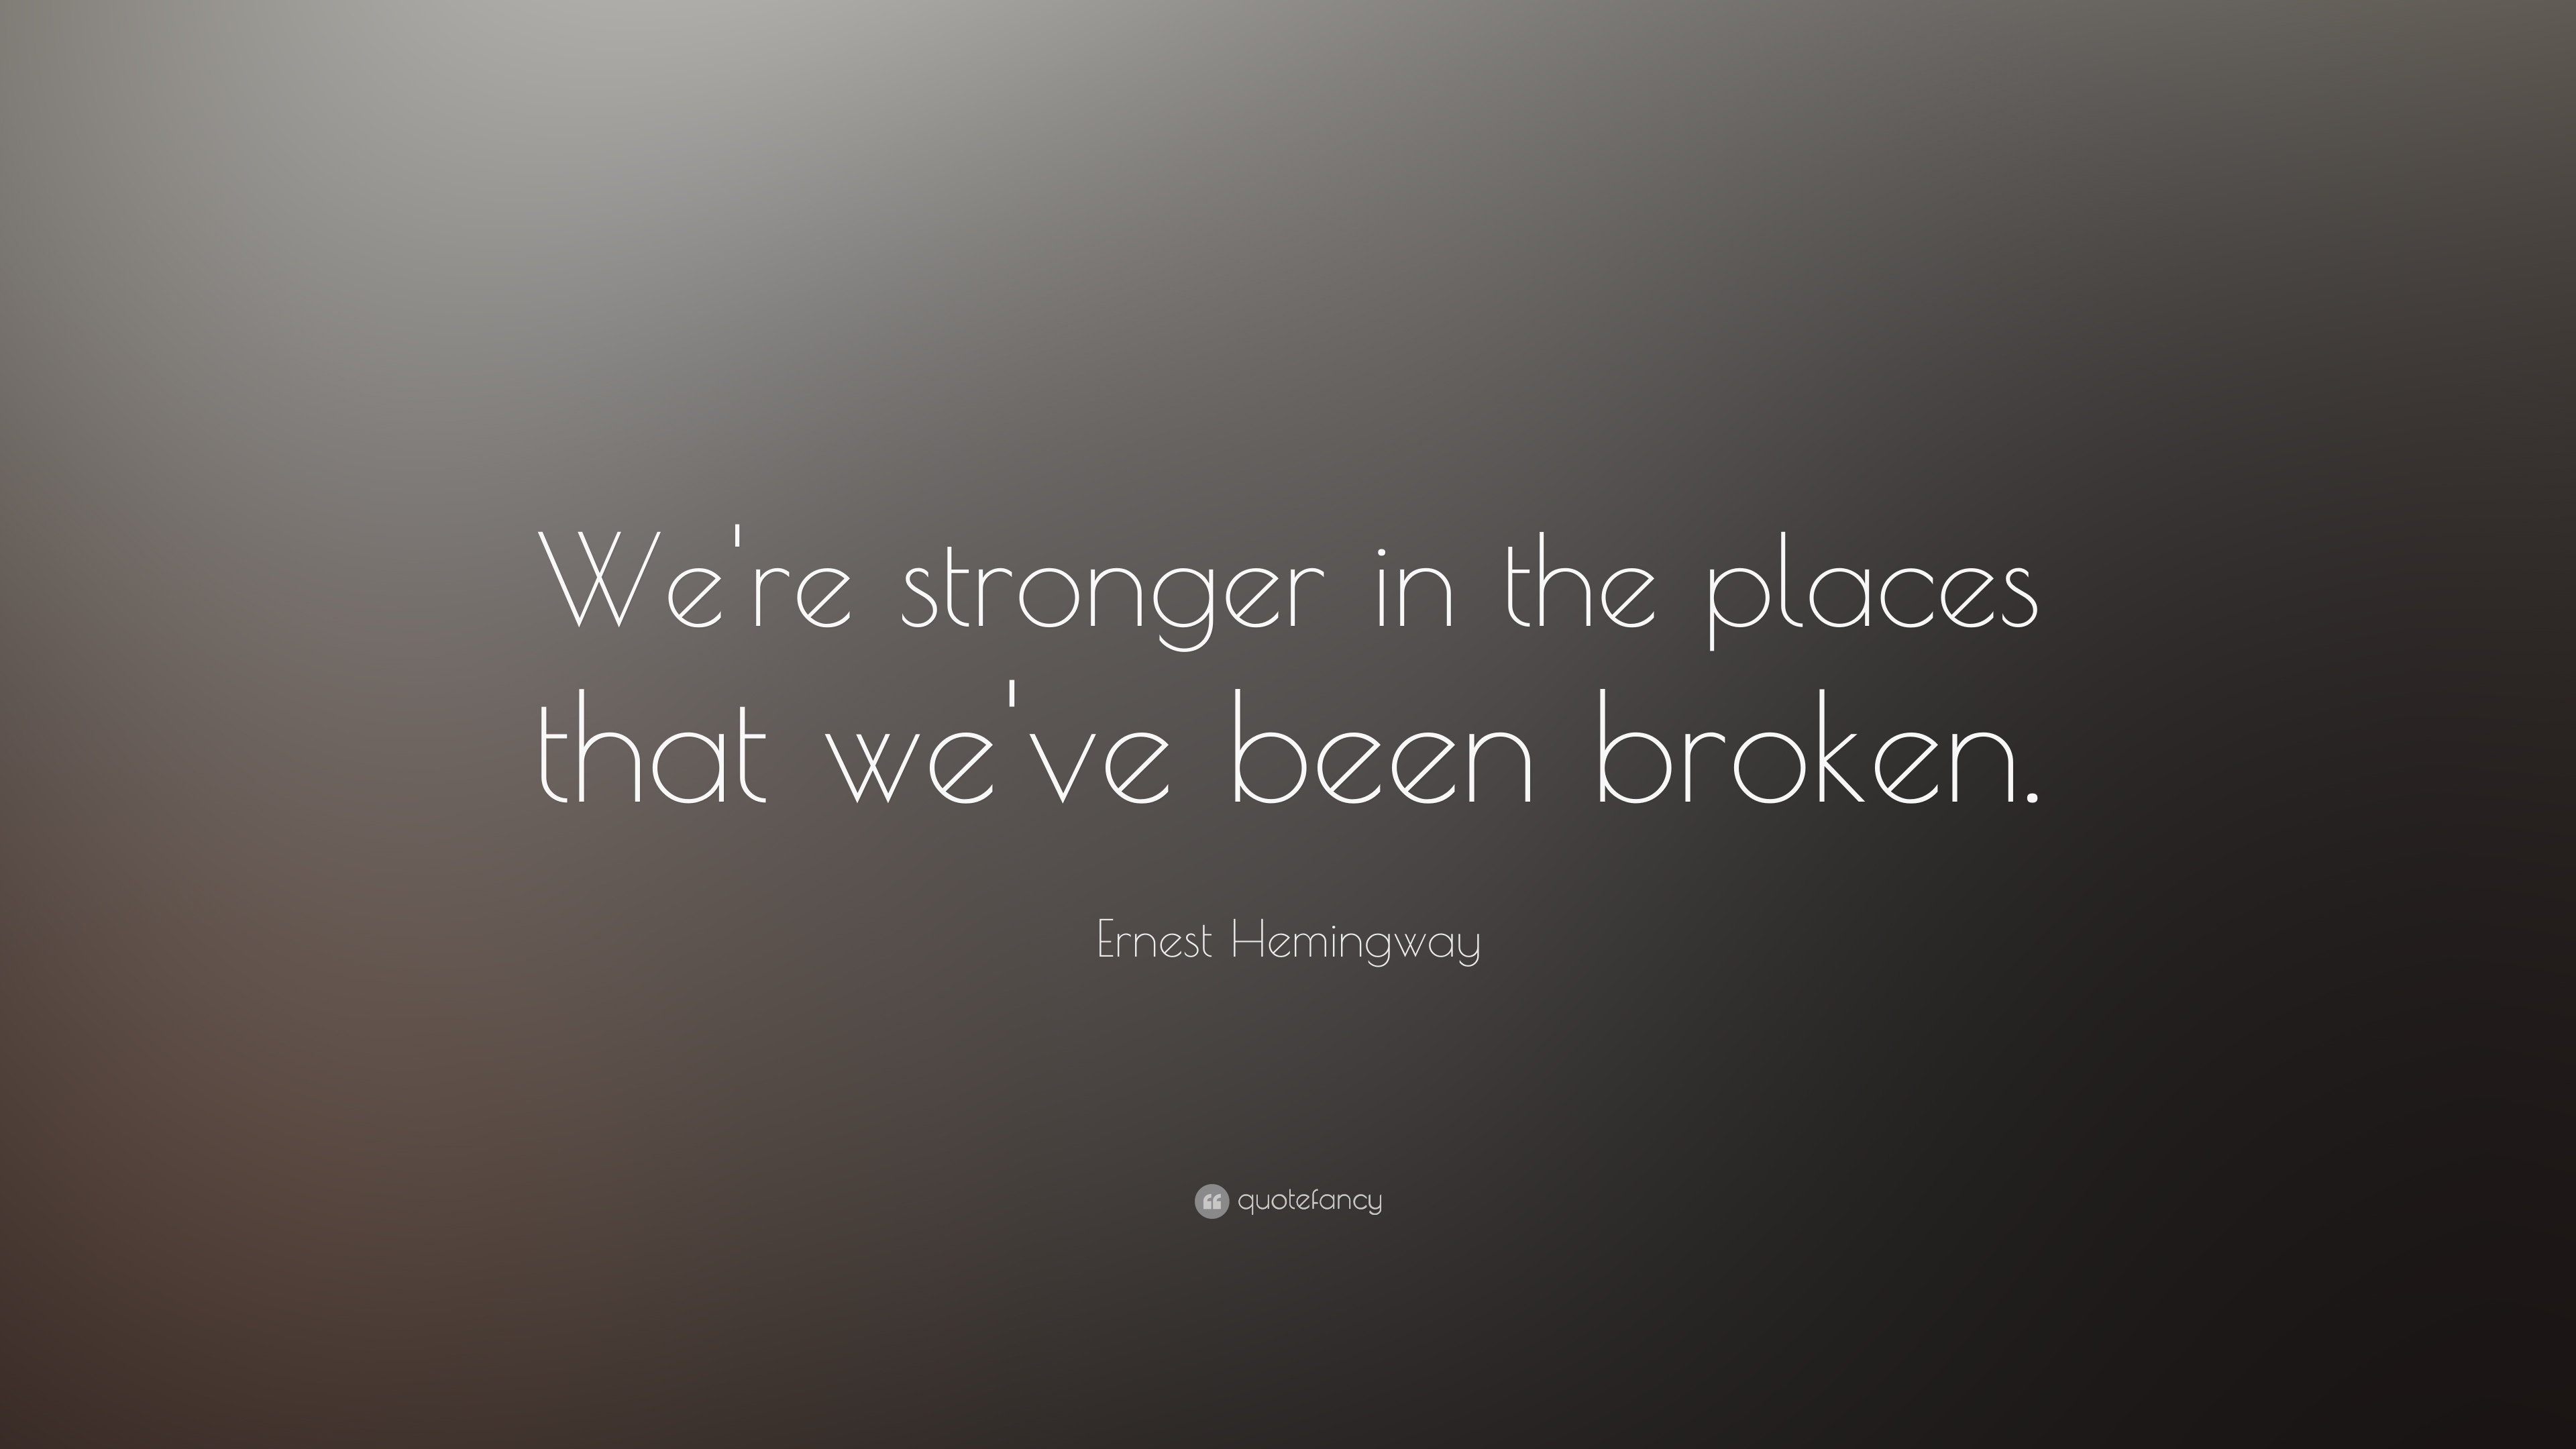 Ernest Hemingway Quotes 100 Wallpapers Quotefancy